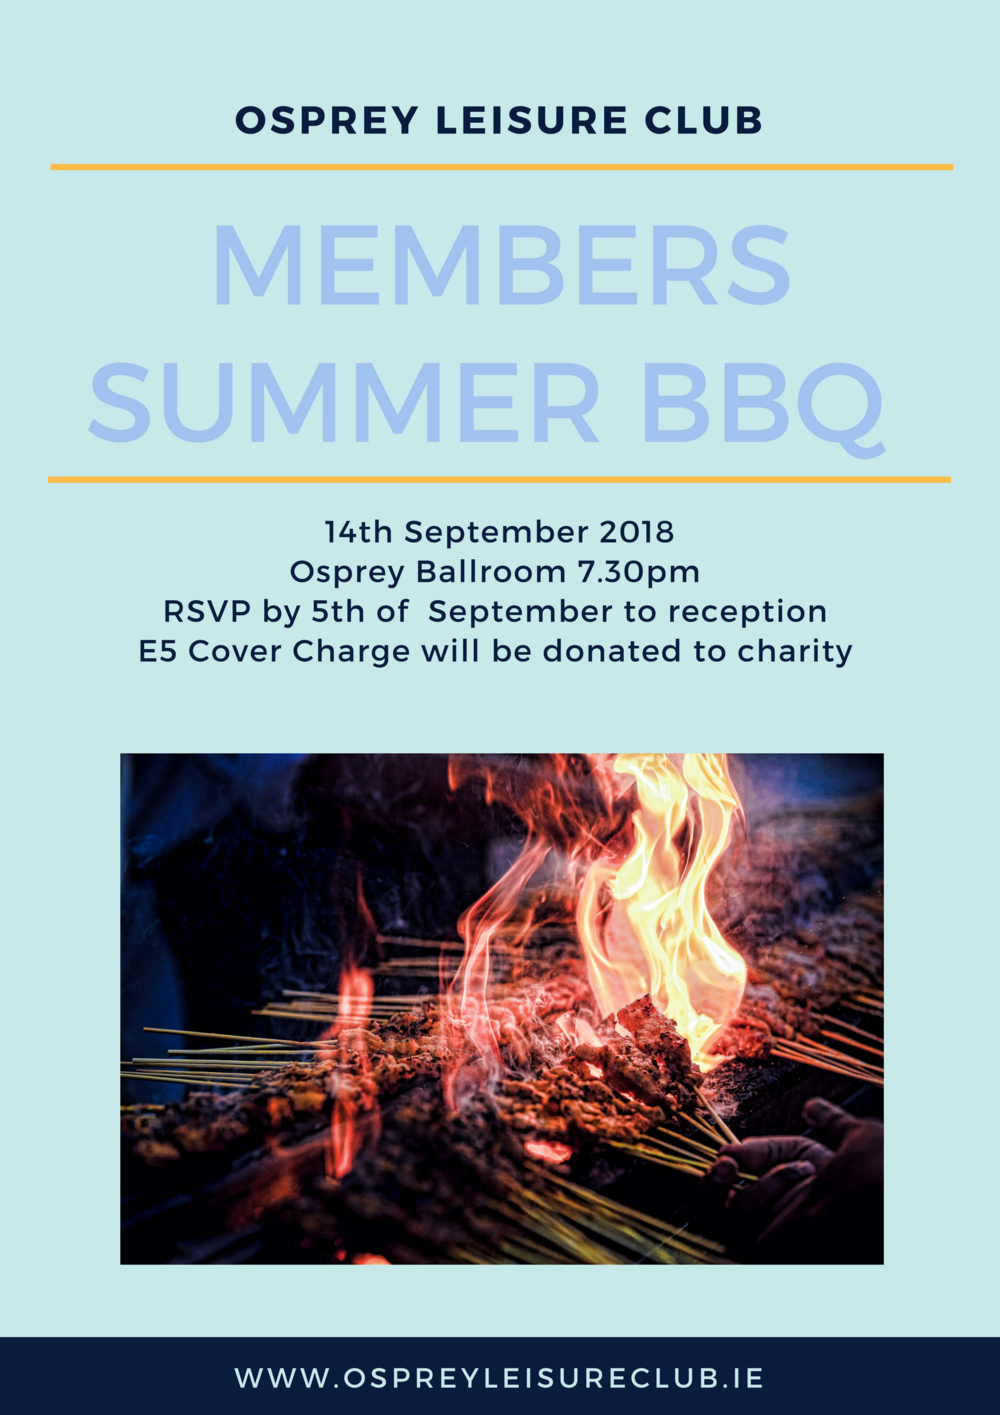 Osprey Leisure Club Summer BBQ